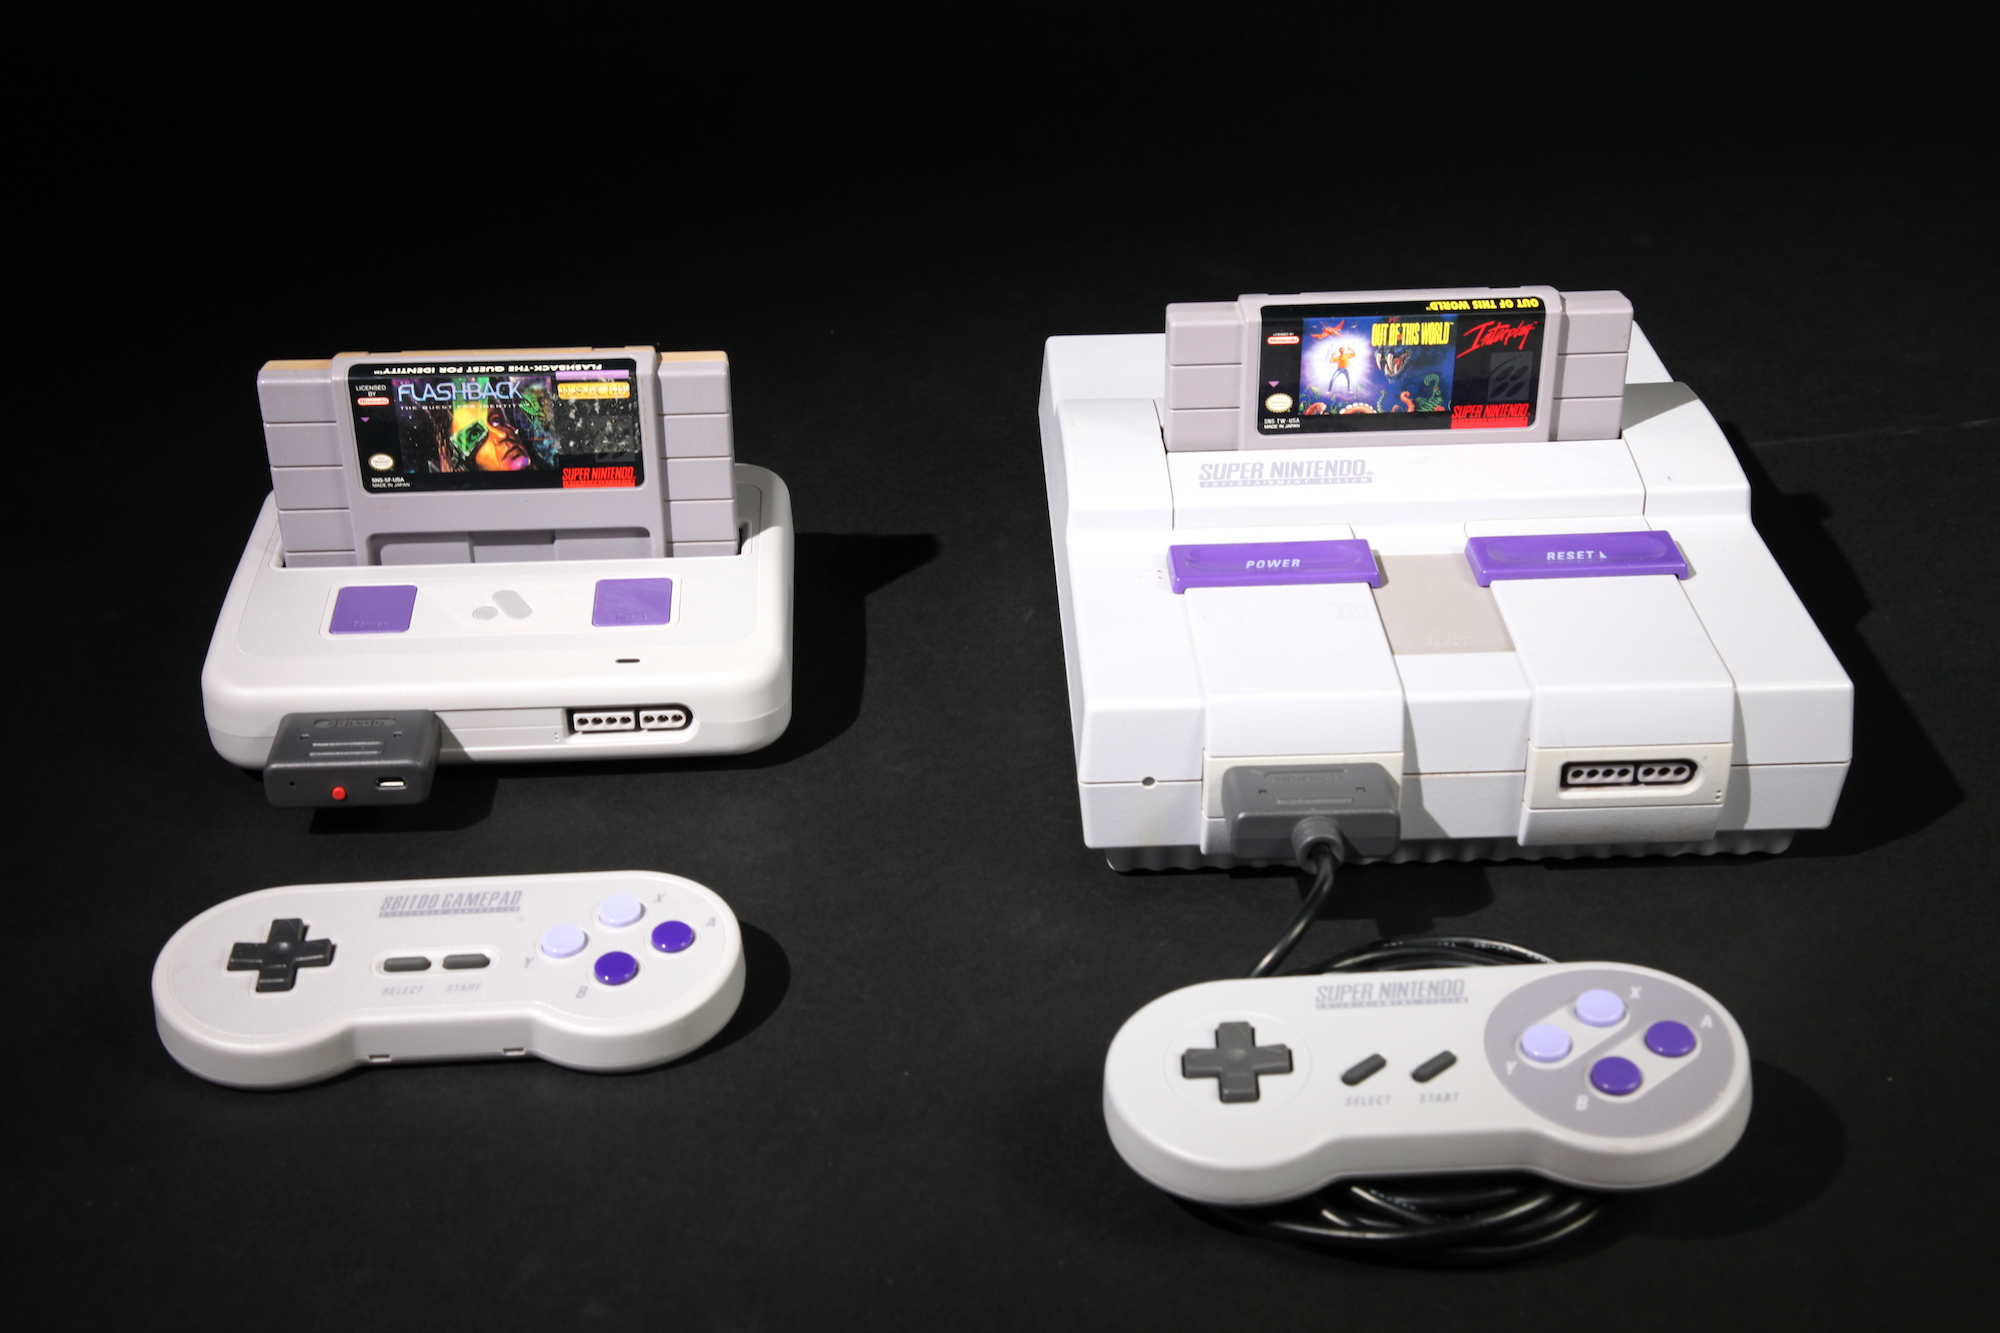 How Analogue remade the Super Nintendo - Polygon